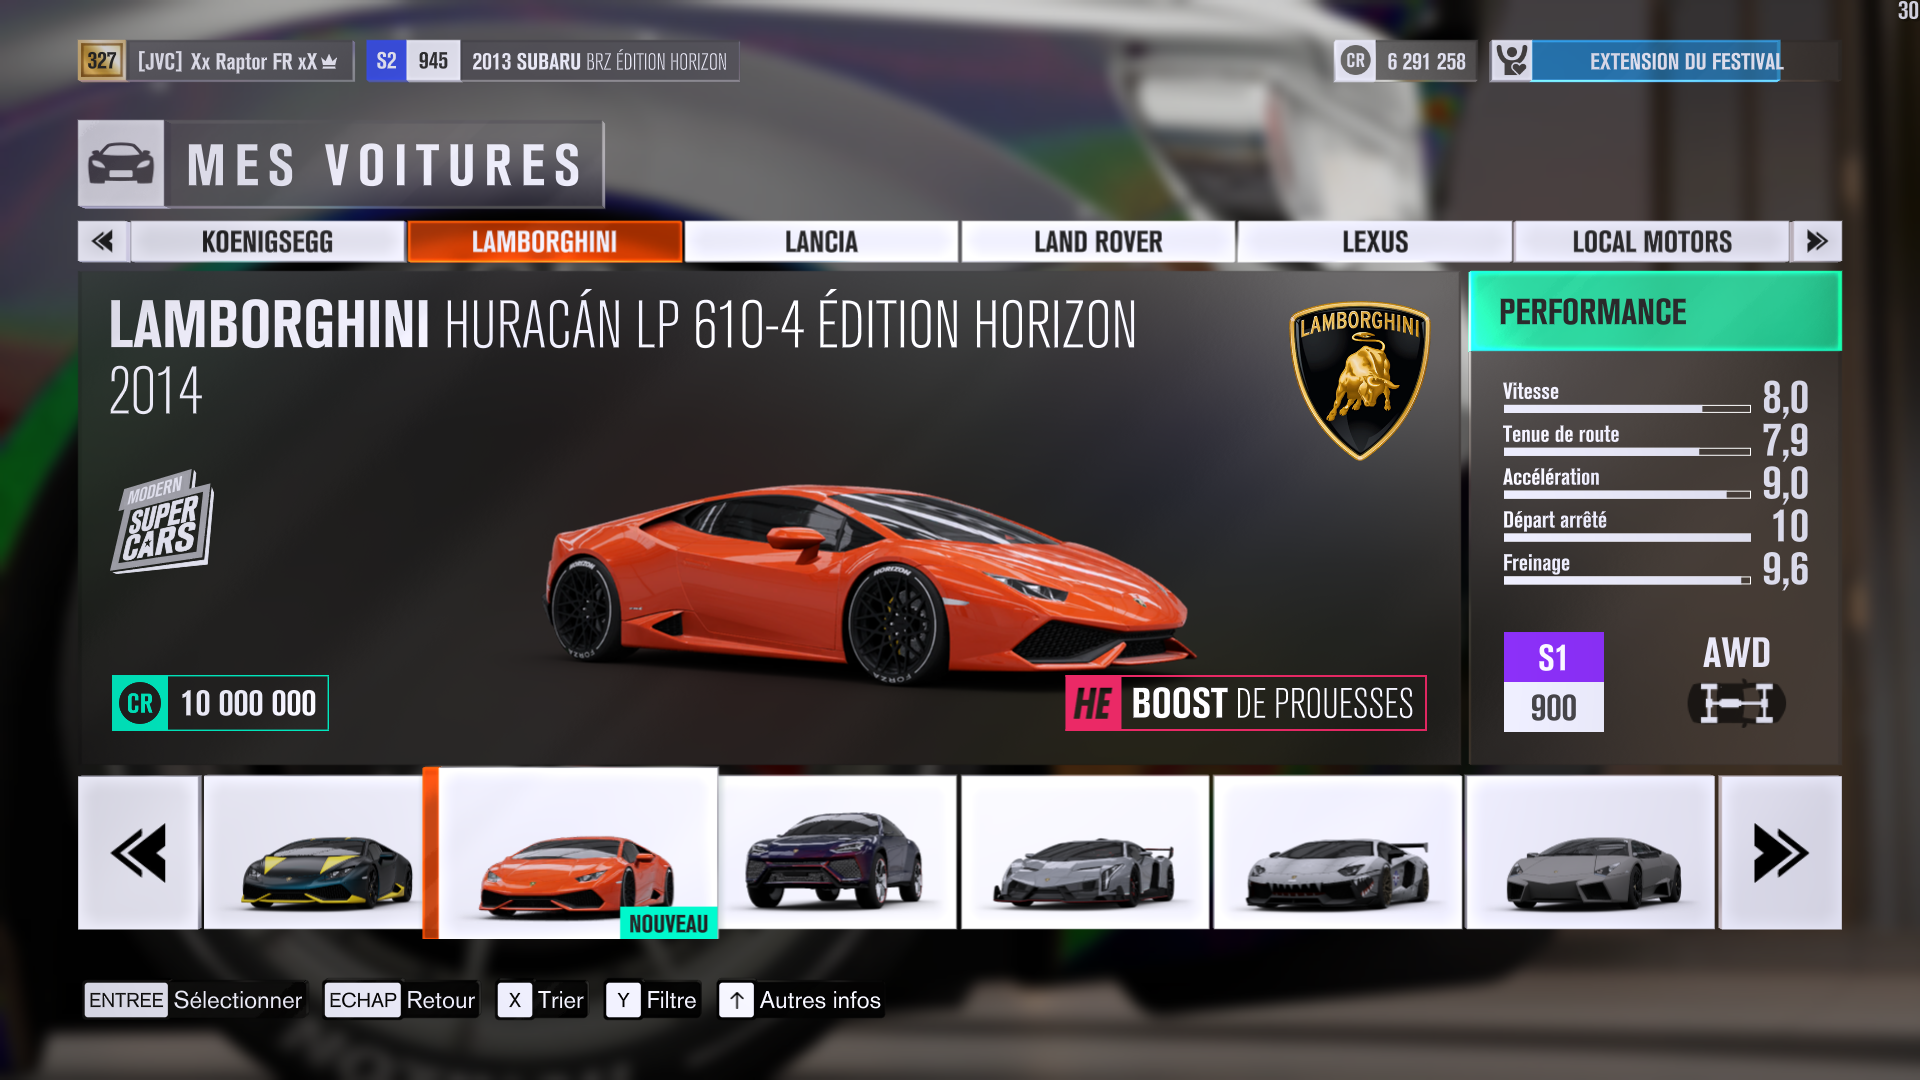 vos voitures dition horizon sur le forum forza horizon 3 27 09 2016 20 51 52 page 2. Black Bedroom Furniture Sets. Home Design Ideas